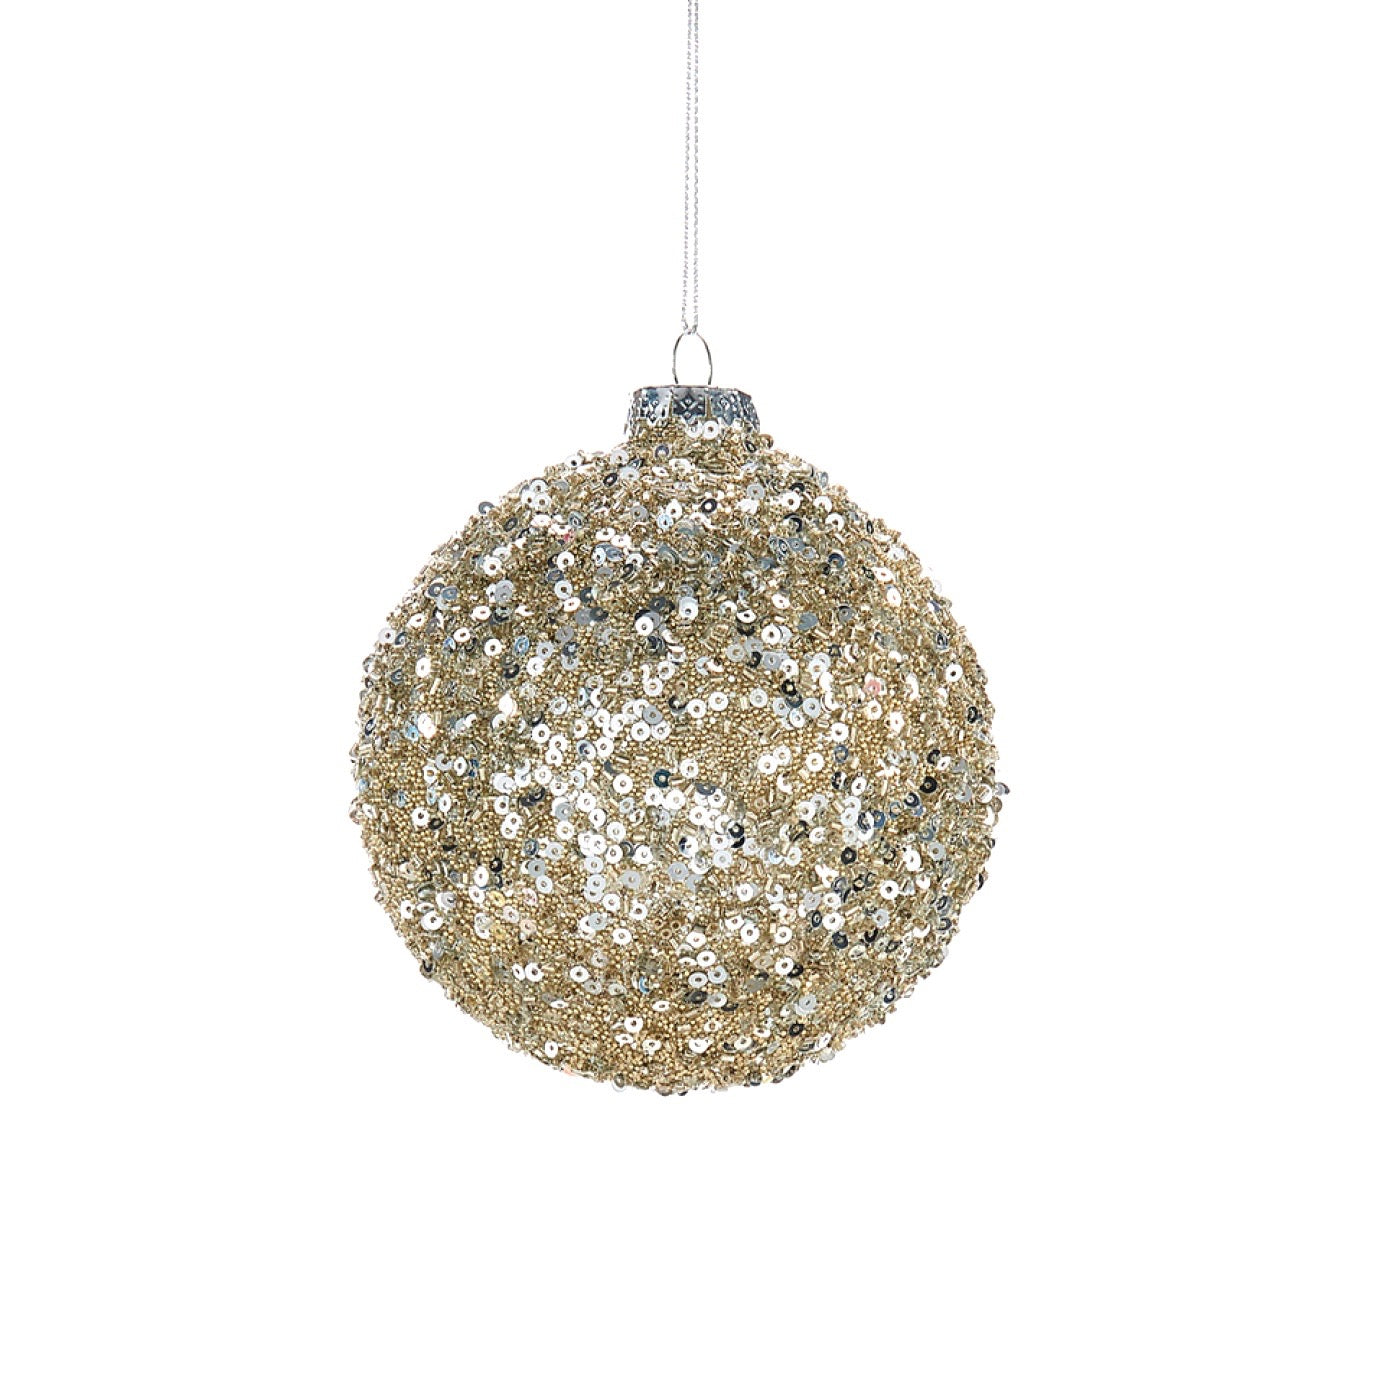 Silver and Gold Sequin Glass Ornament - Ball